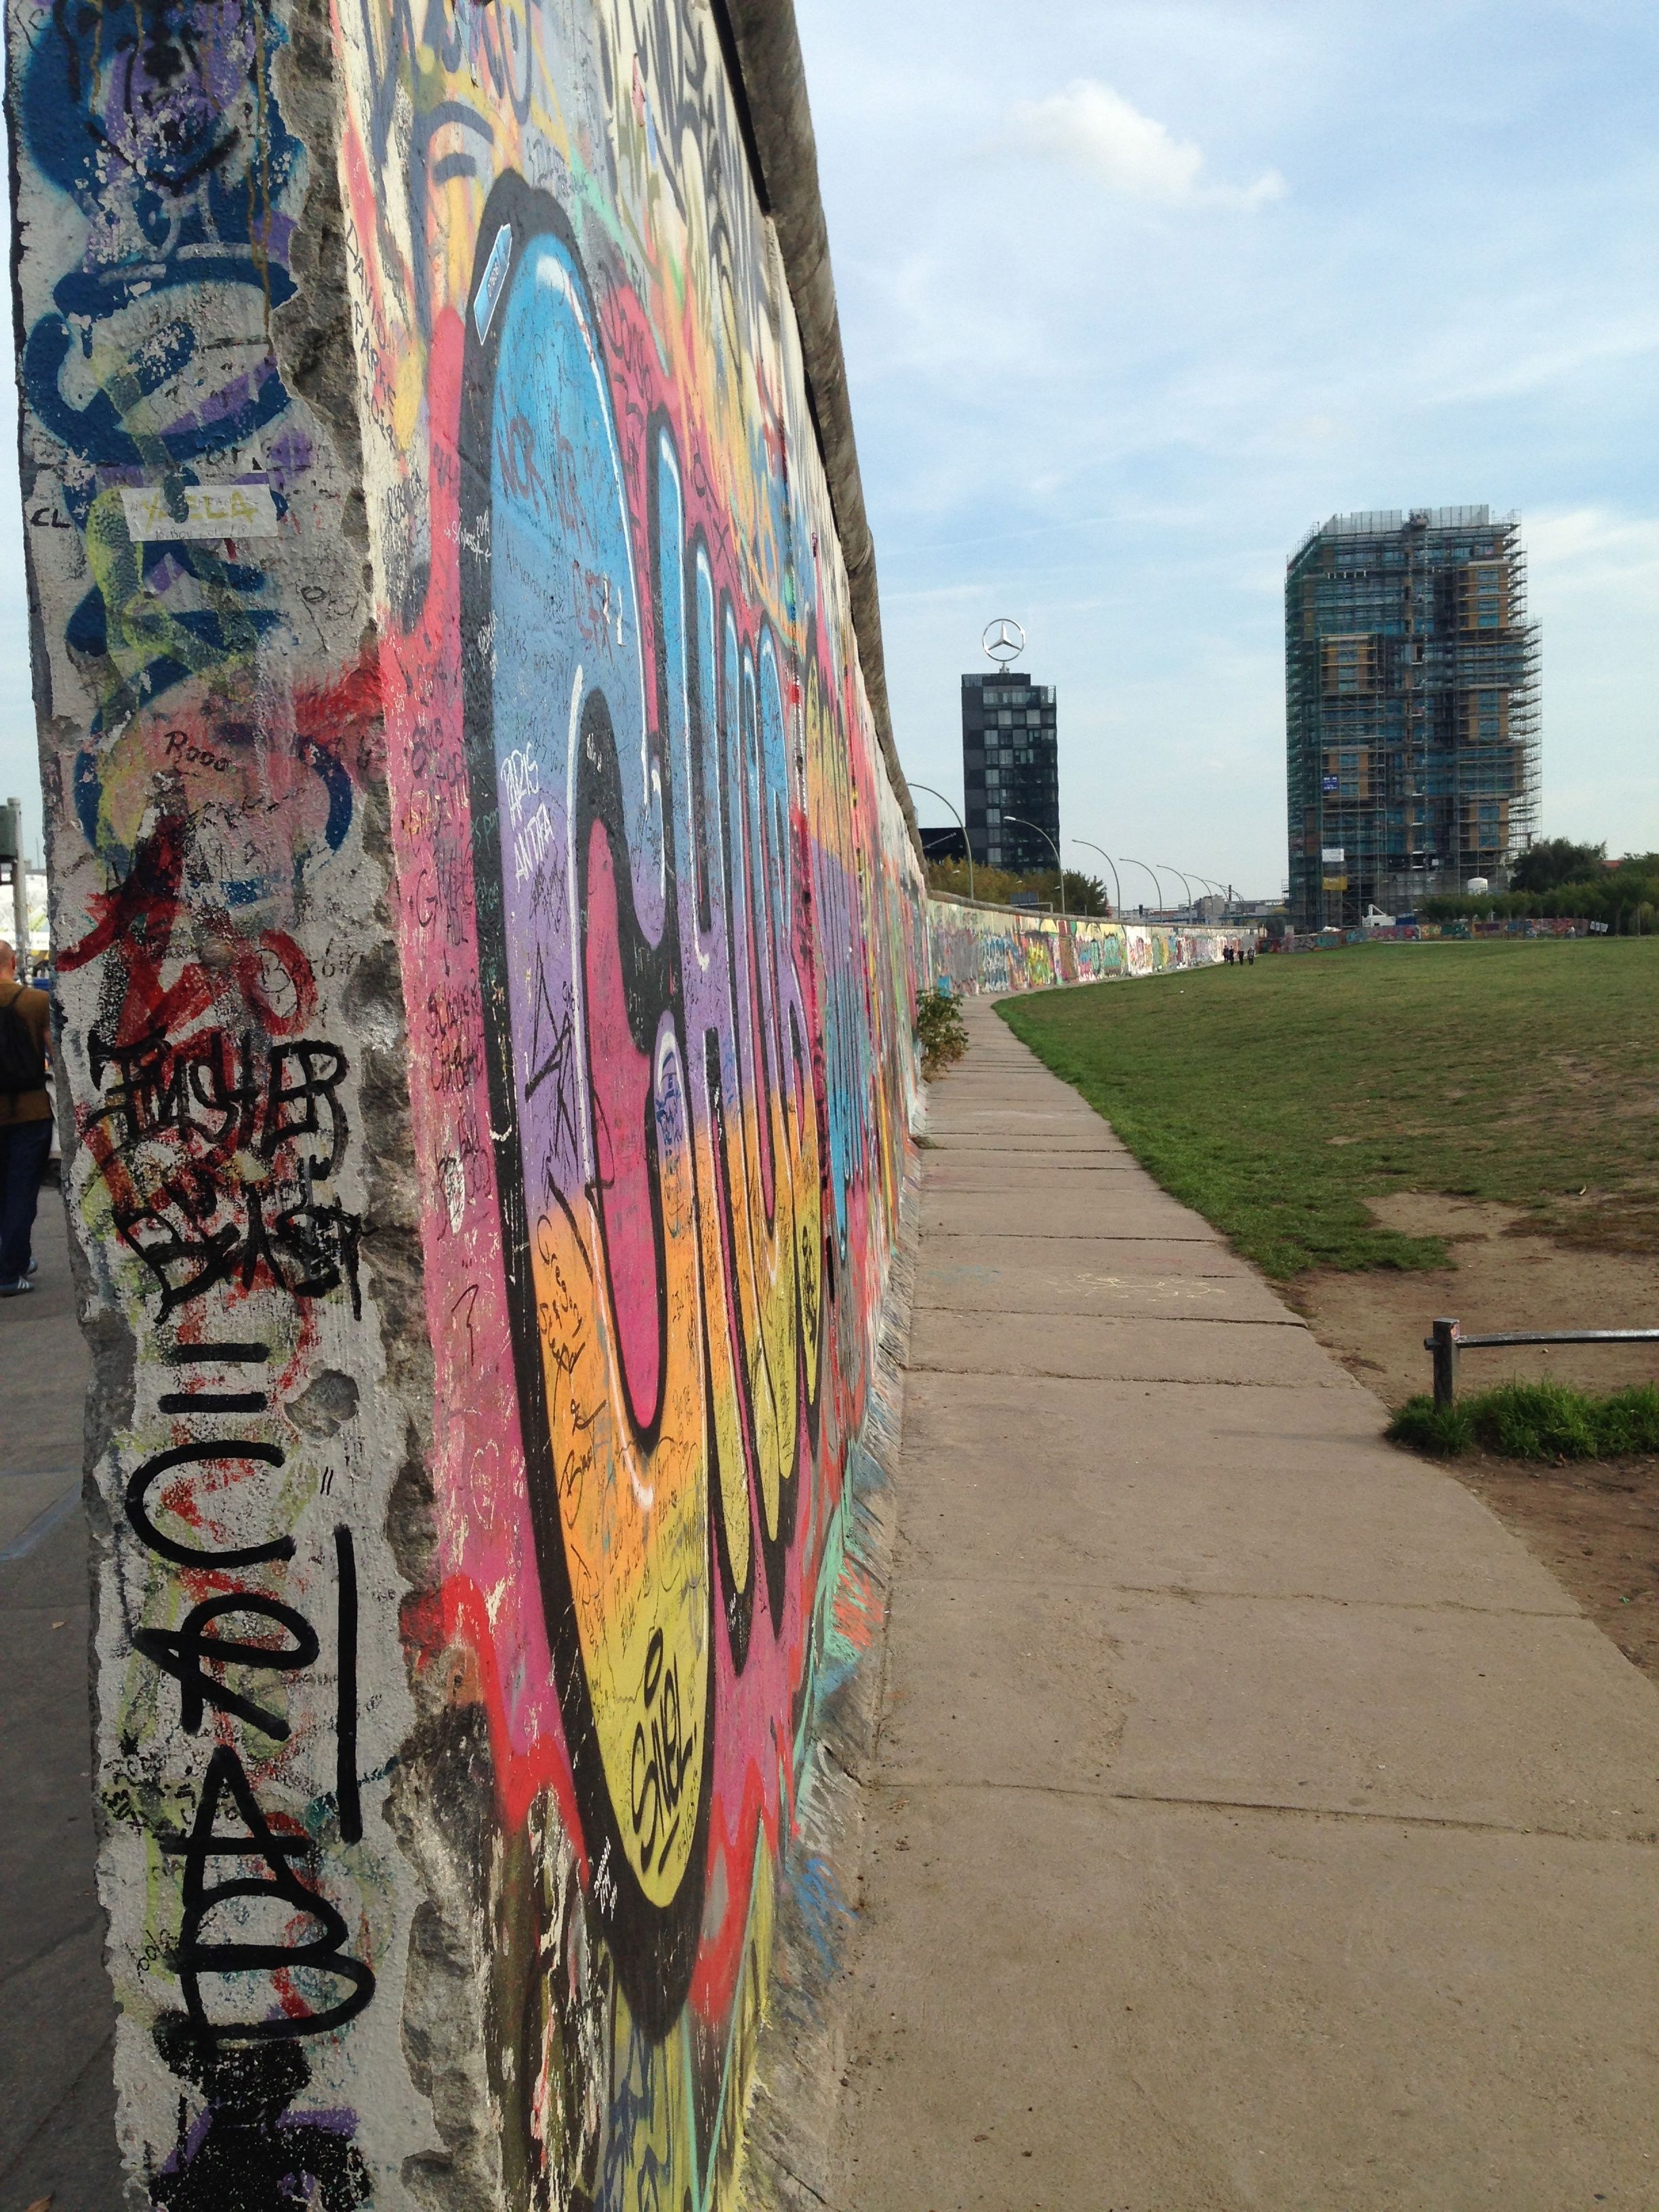 ❖ The East Side Gallery | The Berlin Wall | More than 100 paintings of international artists. Restored in 2009